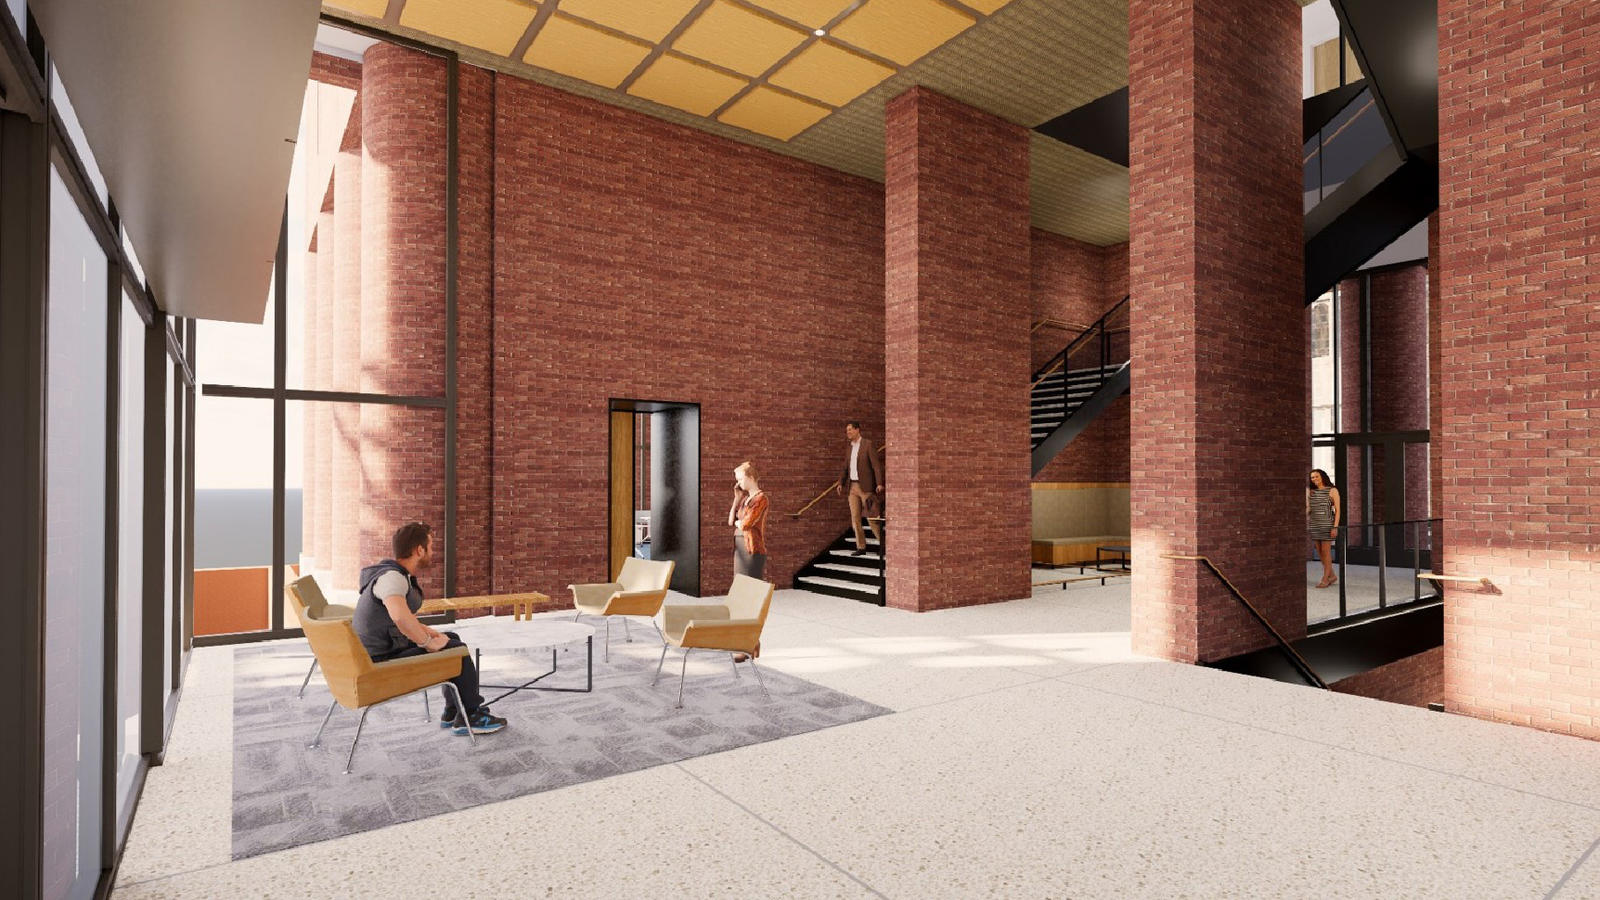 Digital rendering showing future lobby of Kline Tower with connecting stairs to the concourse level and second level classrooms.